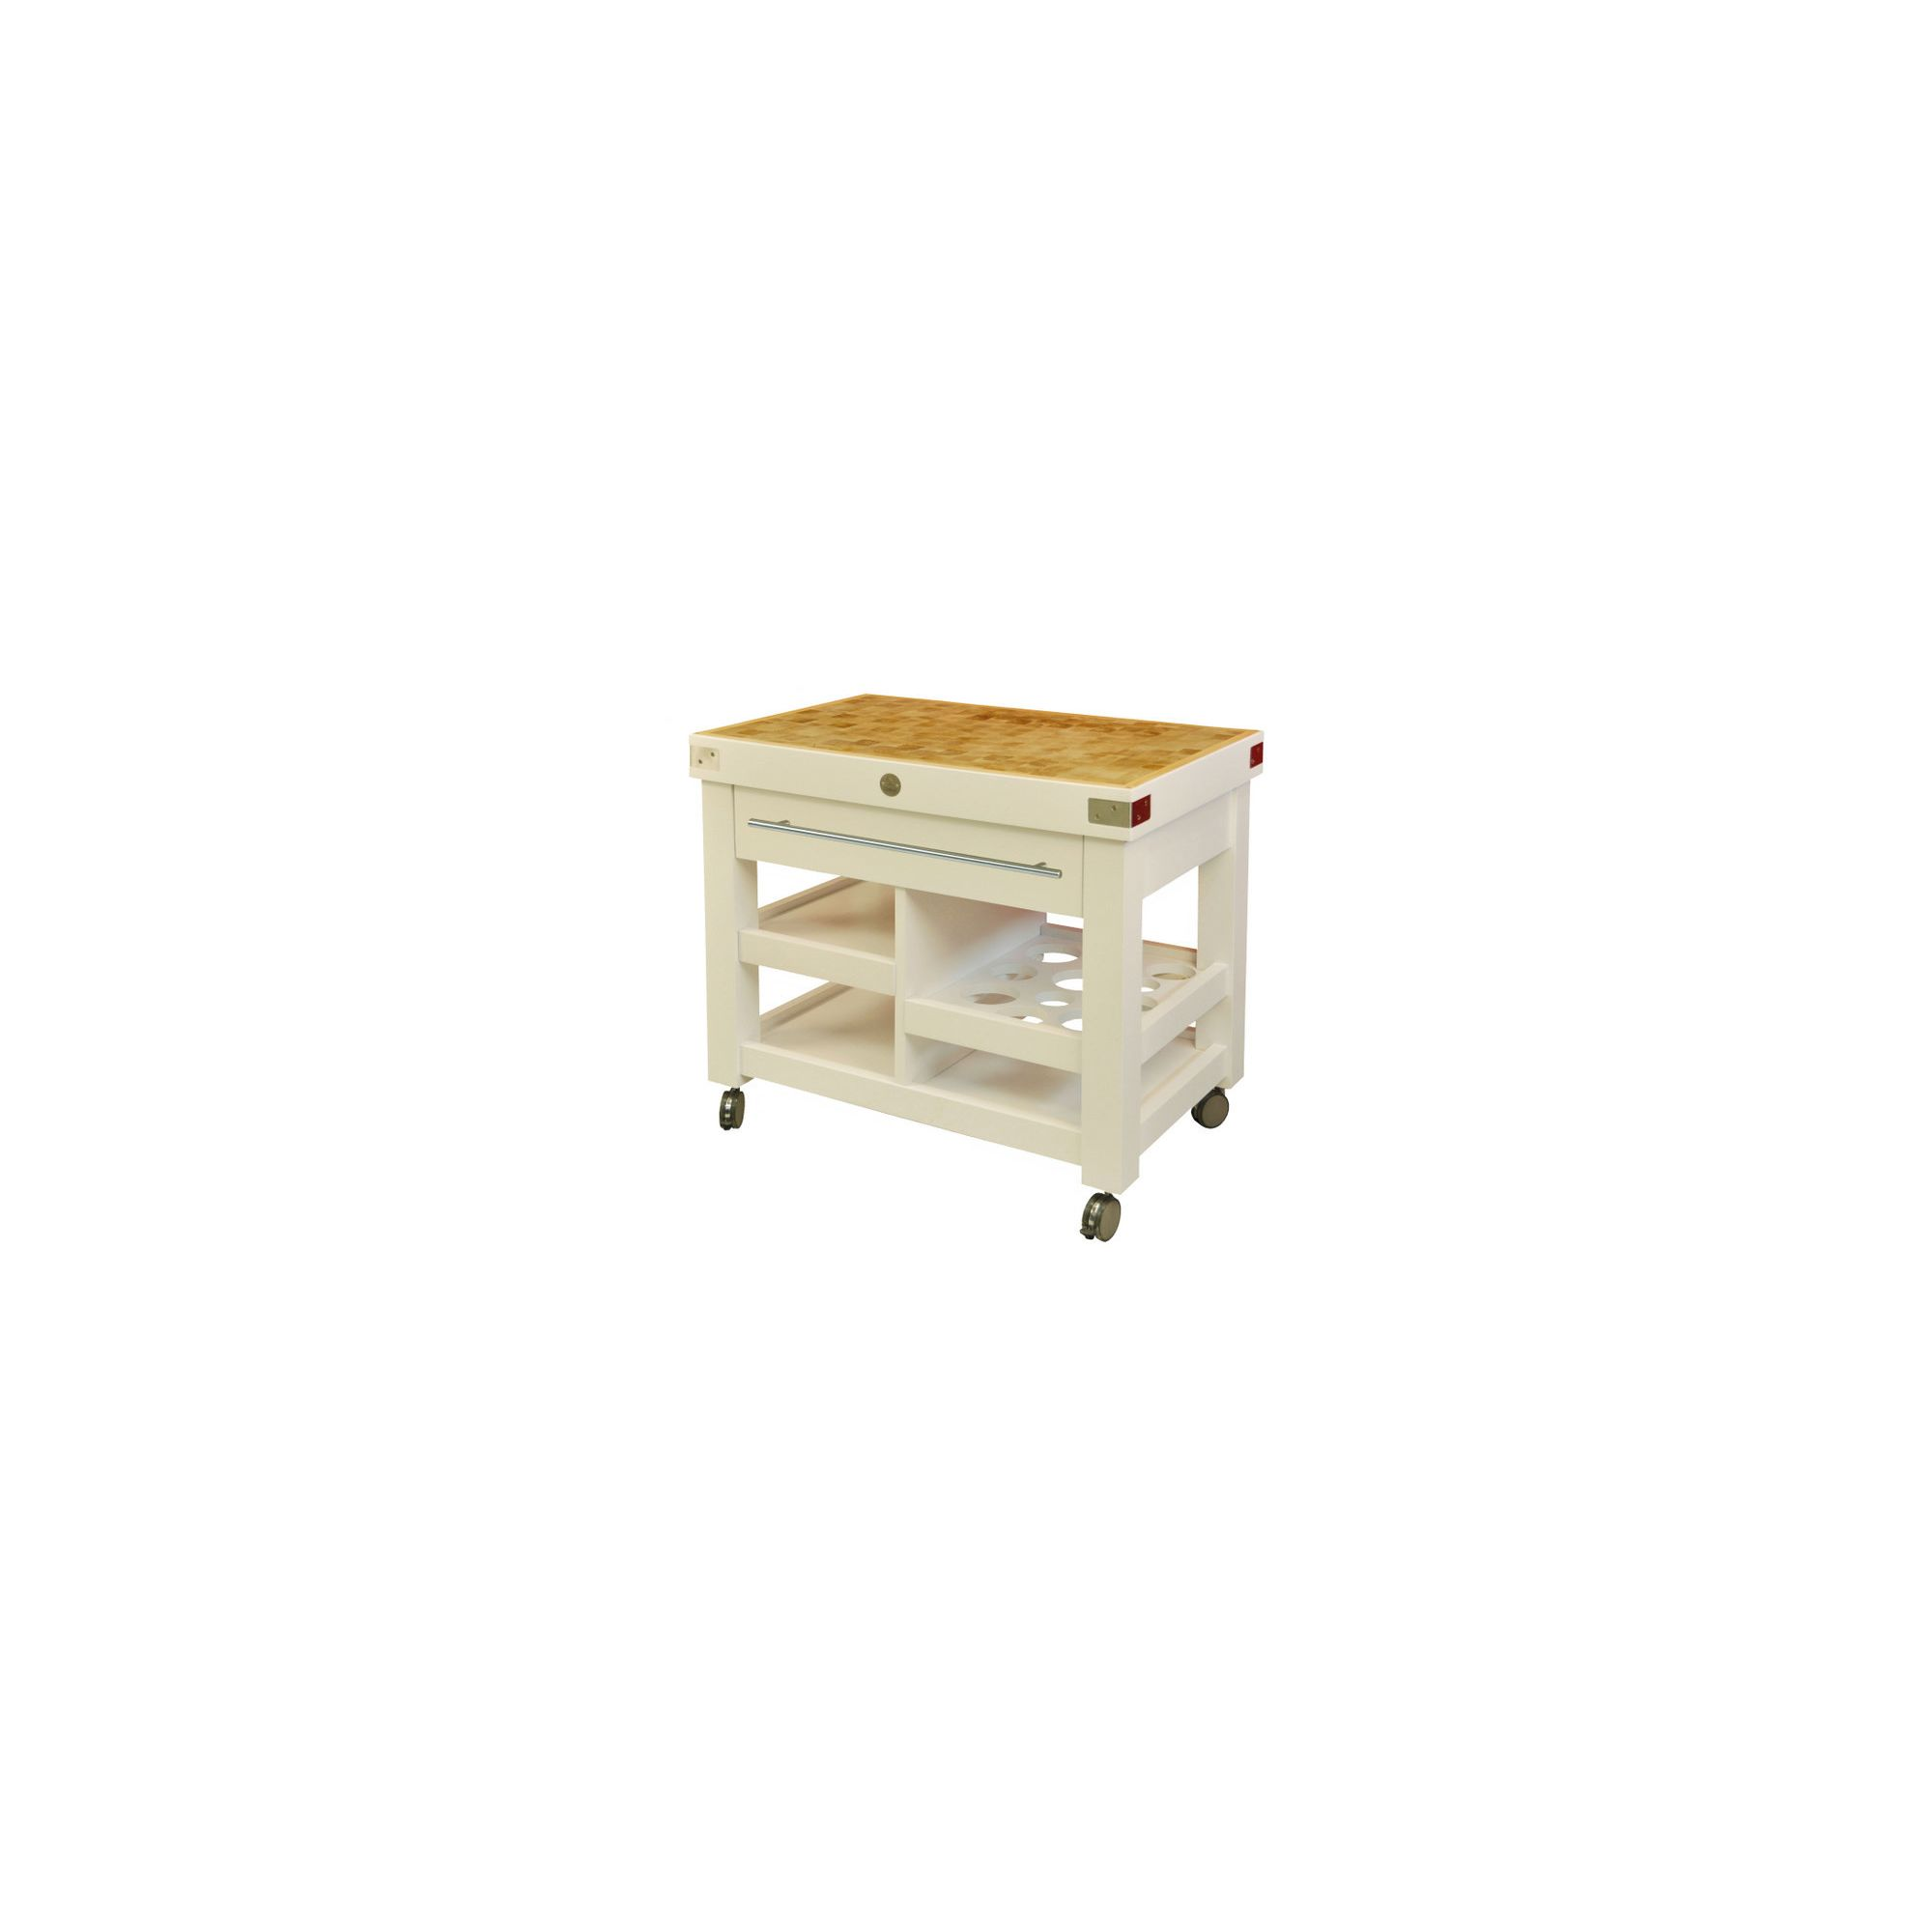 Chabret Multifunction Kitchen Cart - 90cm X 100cm X 50cm at Tesco Direct